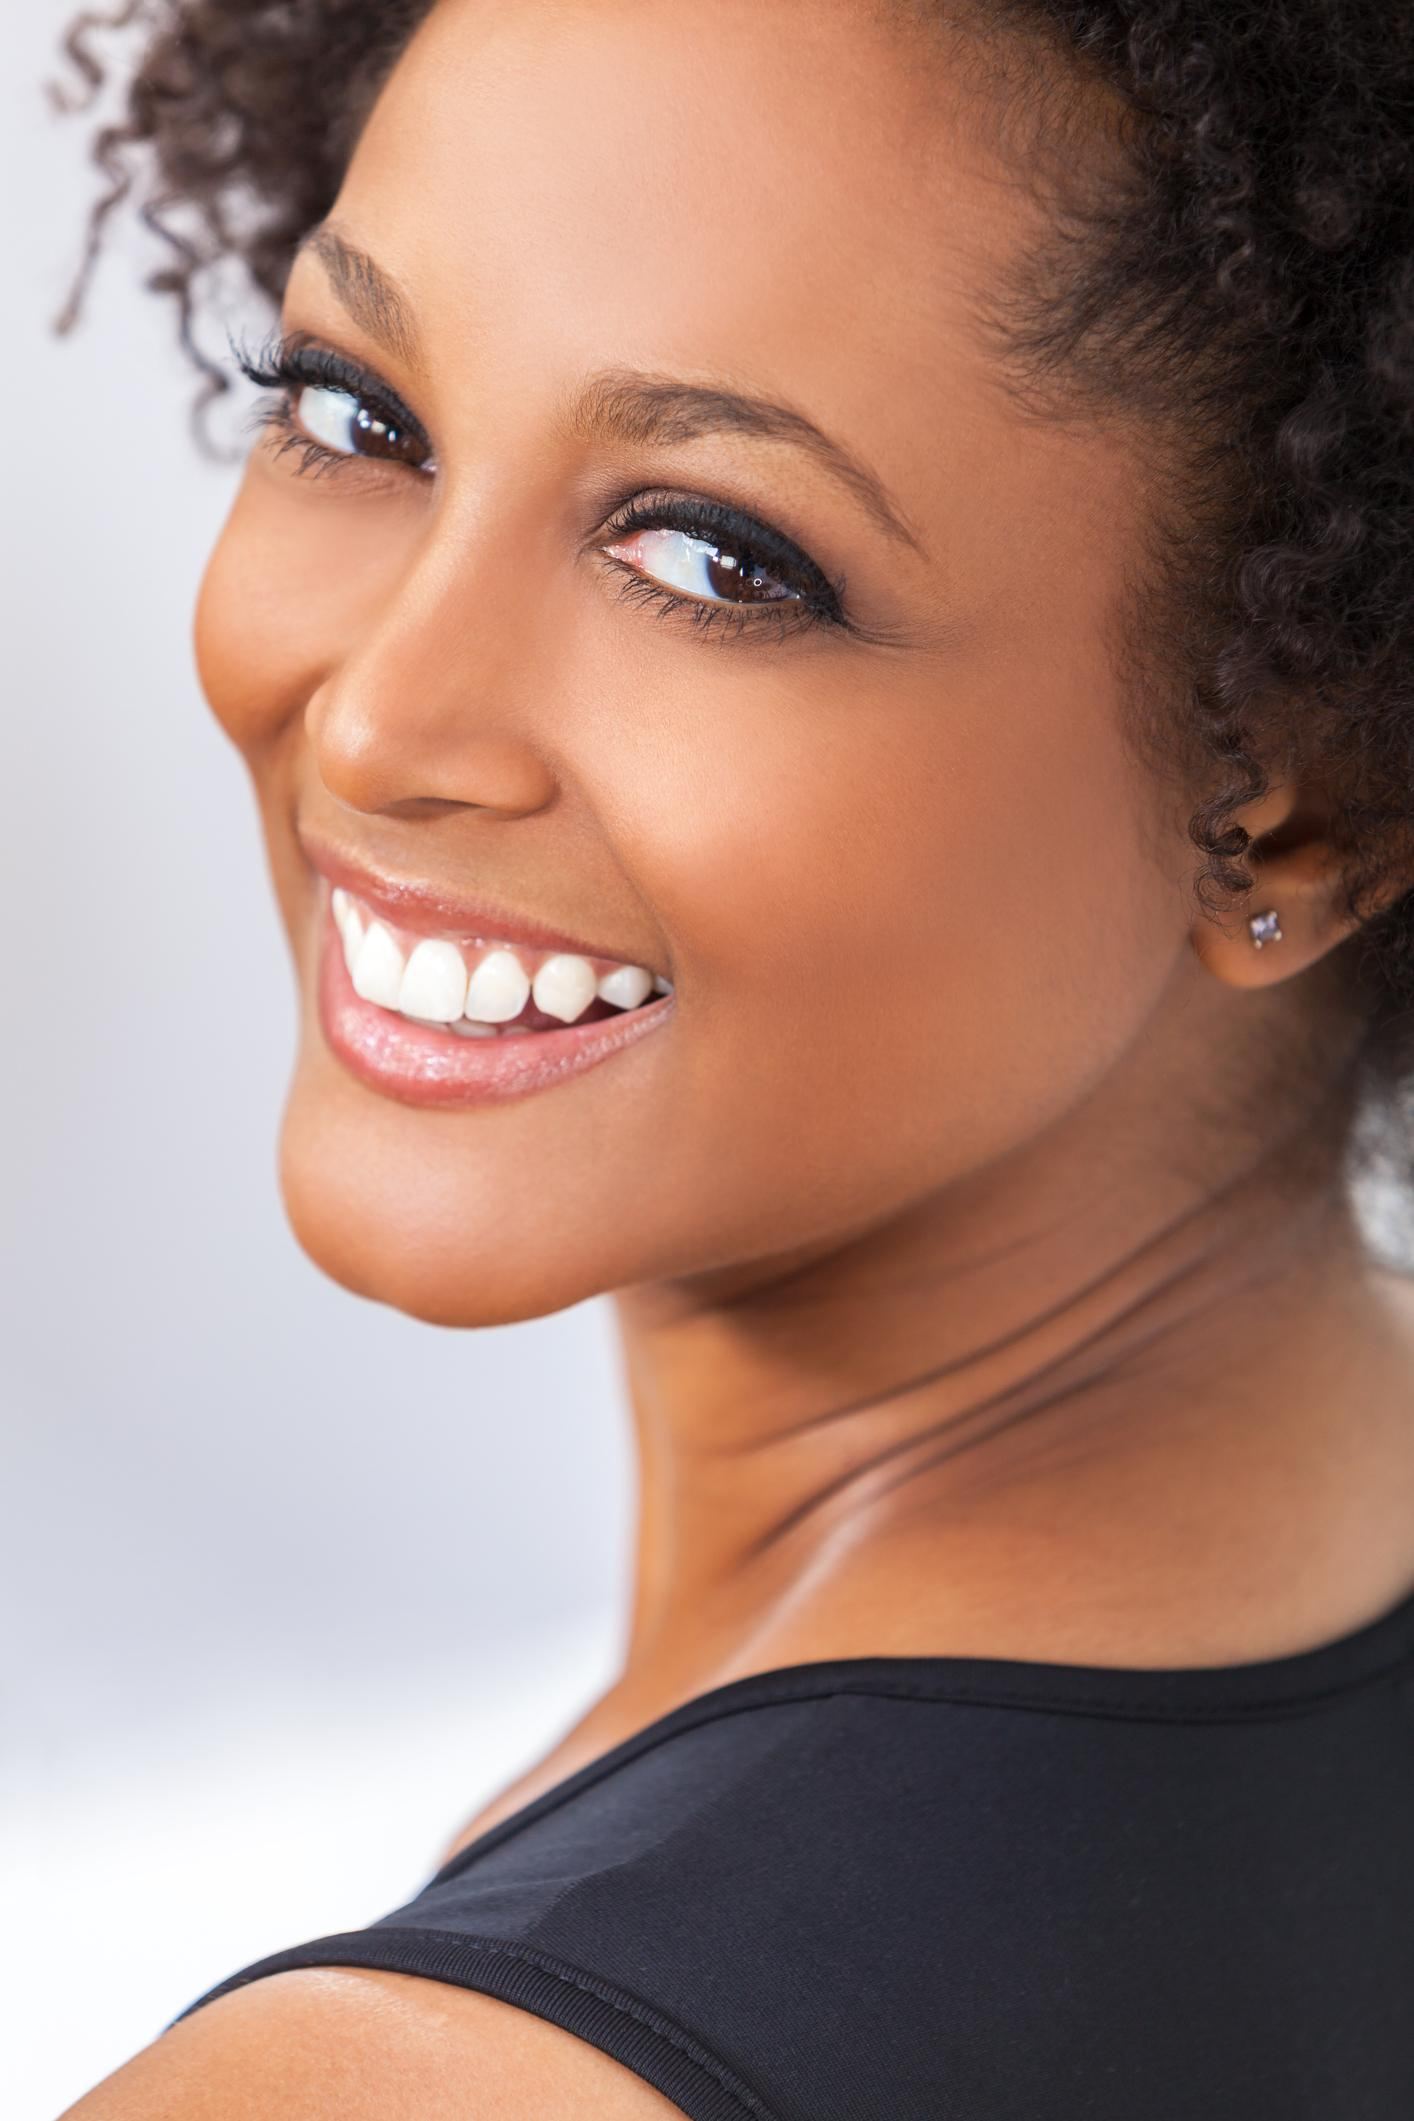 smiling woman with bridges